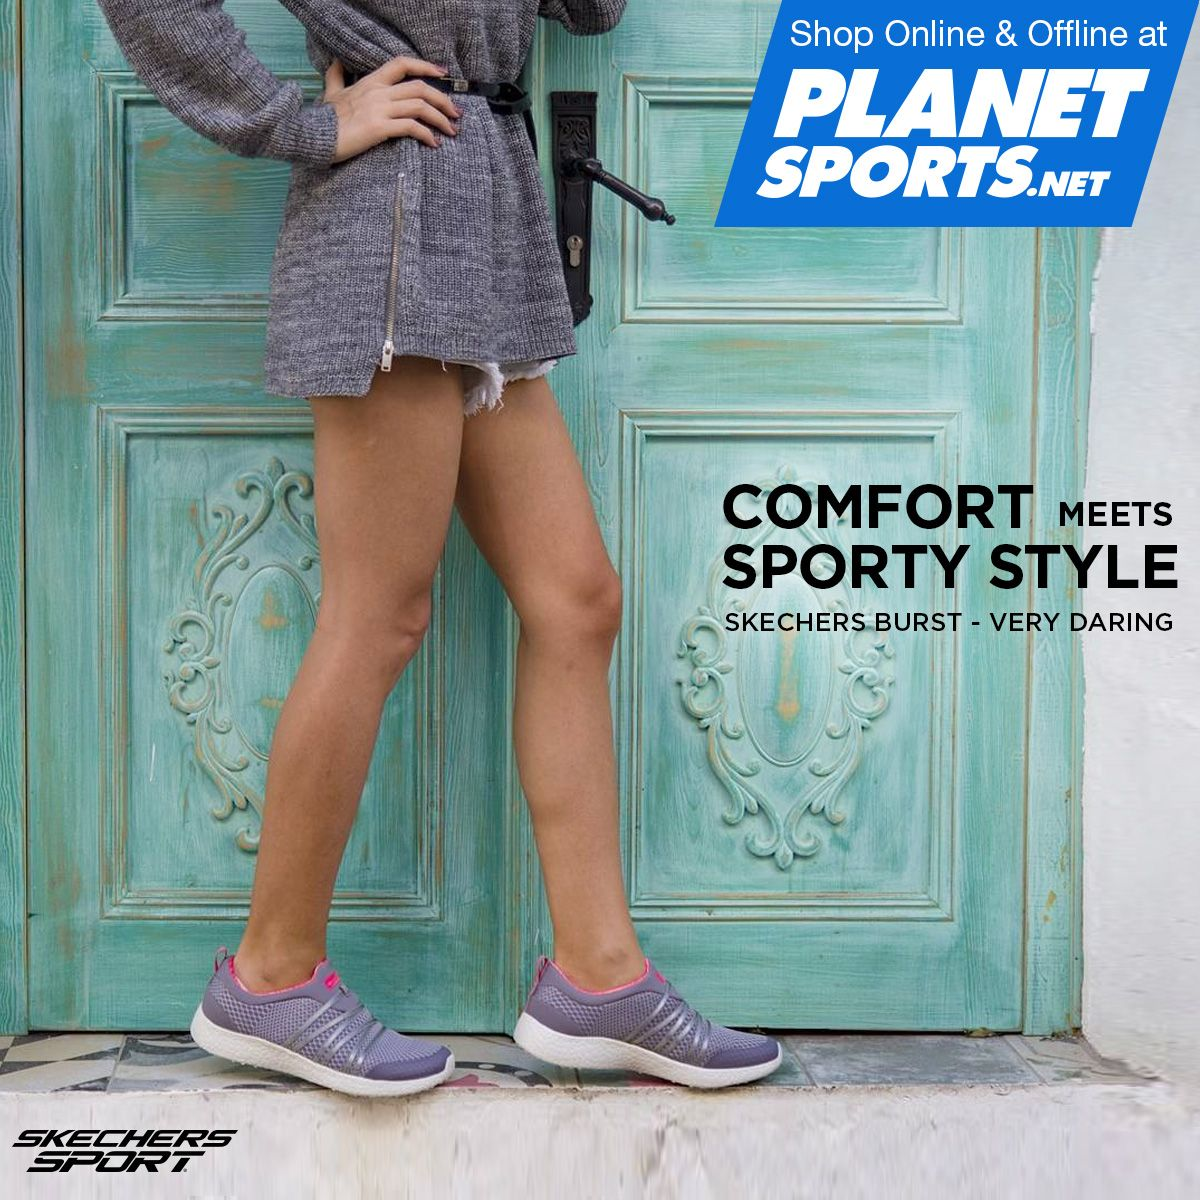 Easy wearing comfort meets sporty style